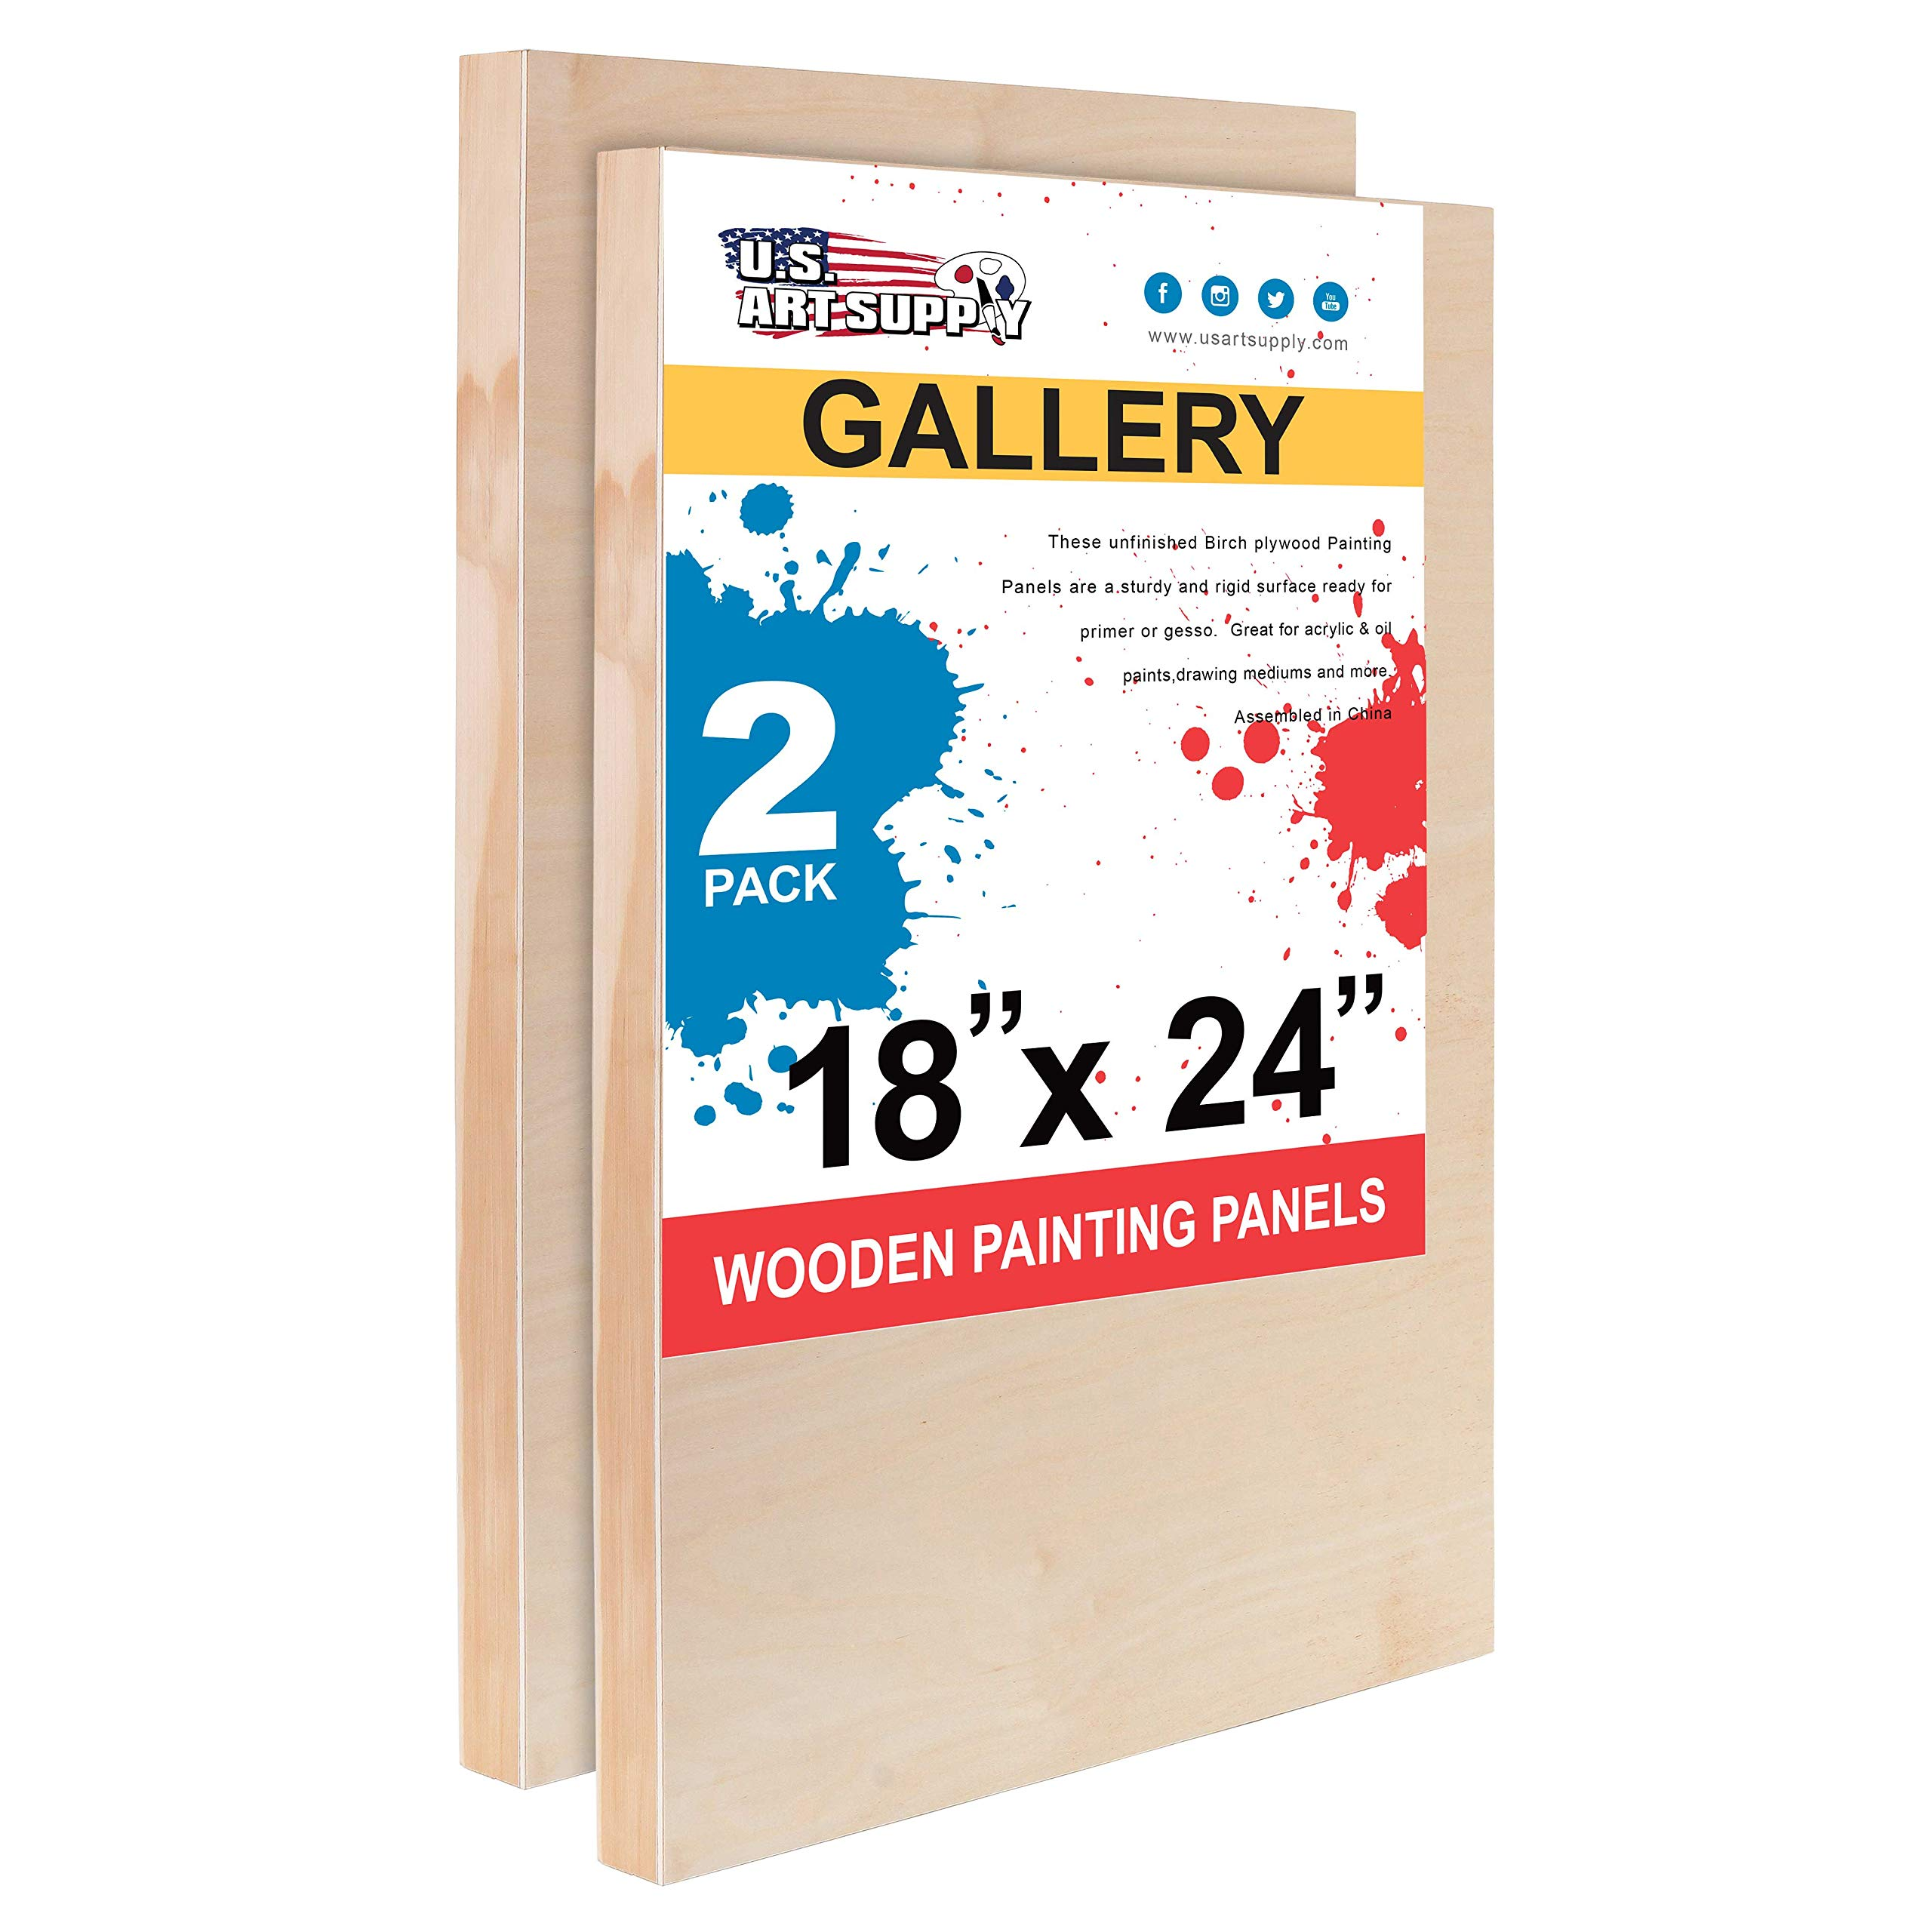 U.S. Art Supply 18'' x 24'' Birch Wood Paint Pouring Panel Boards, Gallery 1-1/2'' Deep Cradle (Pack of 2) - Artist Depth Wooden Wall Canvases - Painting Mixed-Media Craft, Acrylic, Oil, Encaustic by U.S. Art Supply